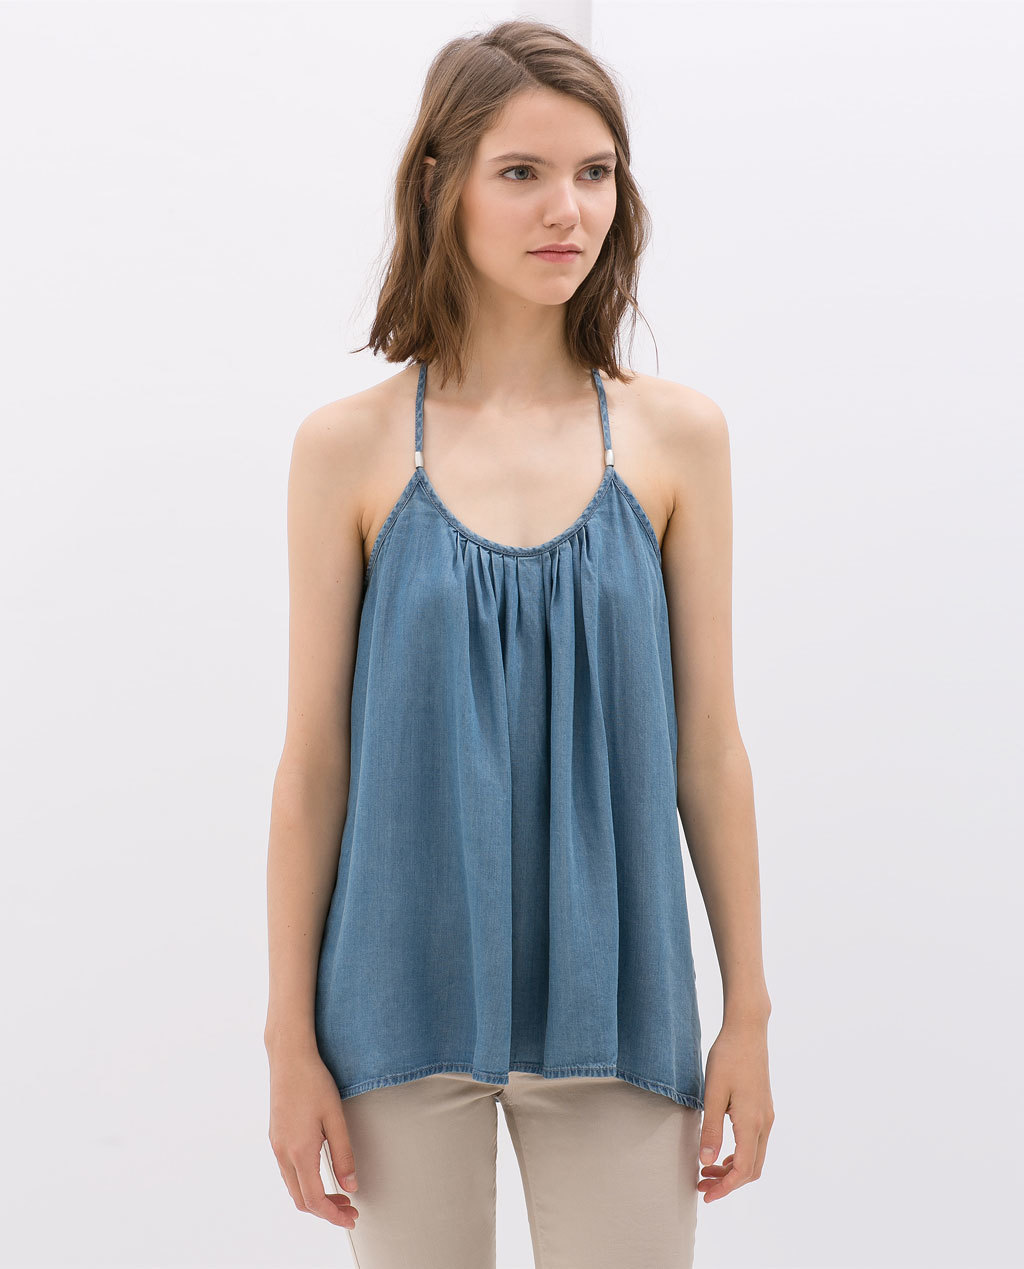 Top With Straps - sleeve style: spaghetti straps; pattern: plain; style: camisole; back detail: low cut/open back; bust detail: ruching/gathering/draping/layers/pintuck pleats at bust; predominant colour: denim; occasions: casual, holiday, creative work; length: standard; neckline: scoop; fibres: cotton - 100%; fit: loose; sleeve length: sleeveless; texture group: denim; pattern type: fabric; season: s/s 2014